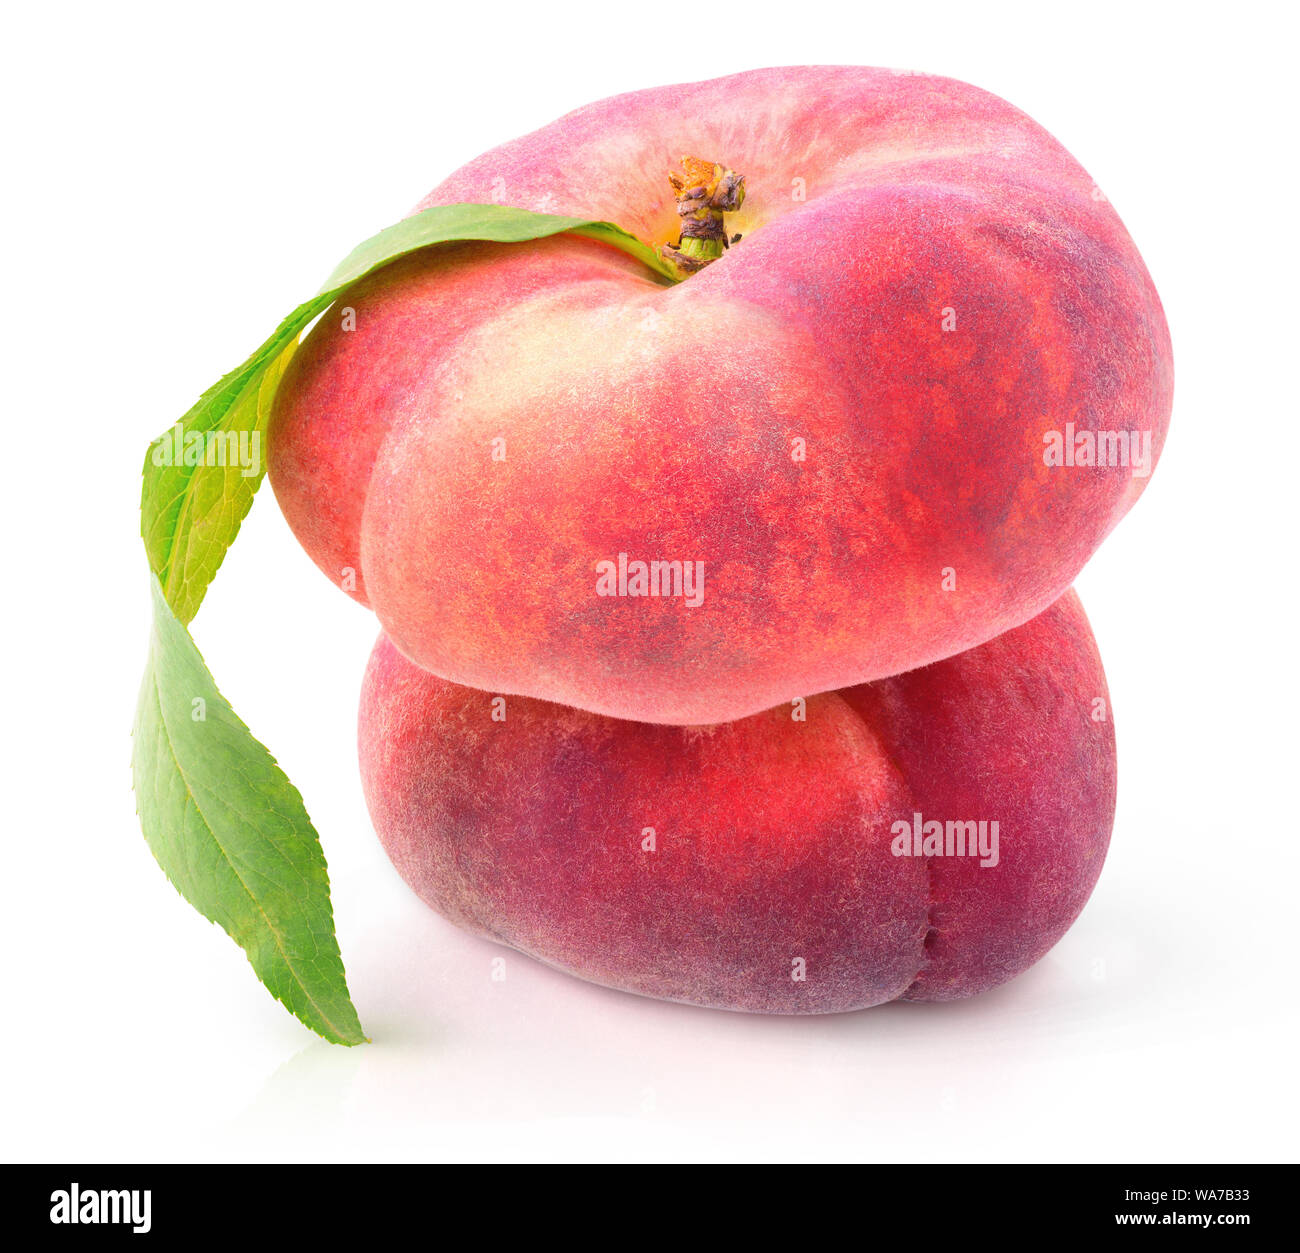 Isolated fruits. Two flat peaches (doughnut peaches) on top of each other isolated on white background with clipping path Stock Photo